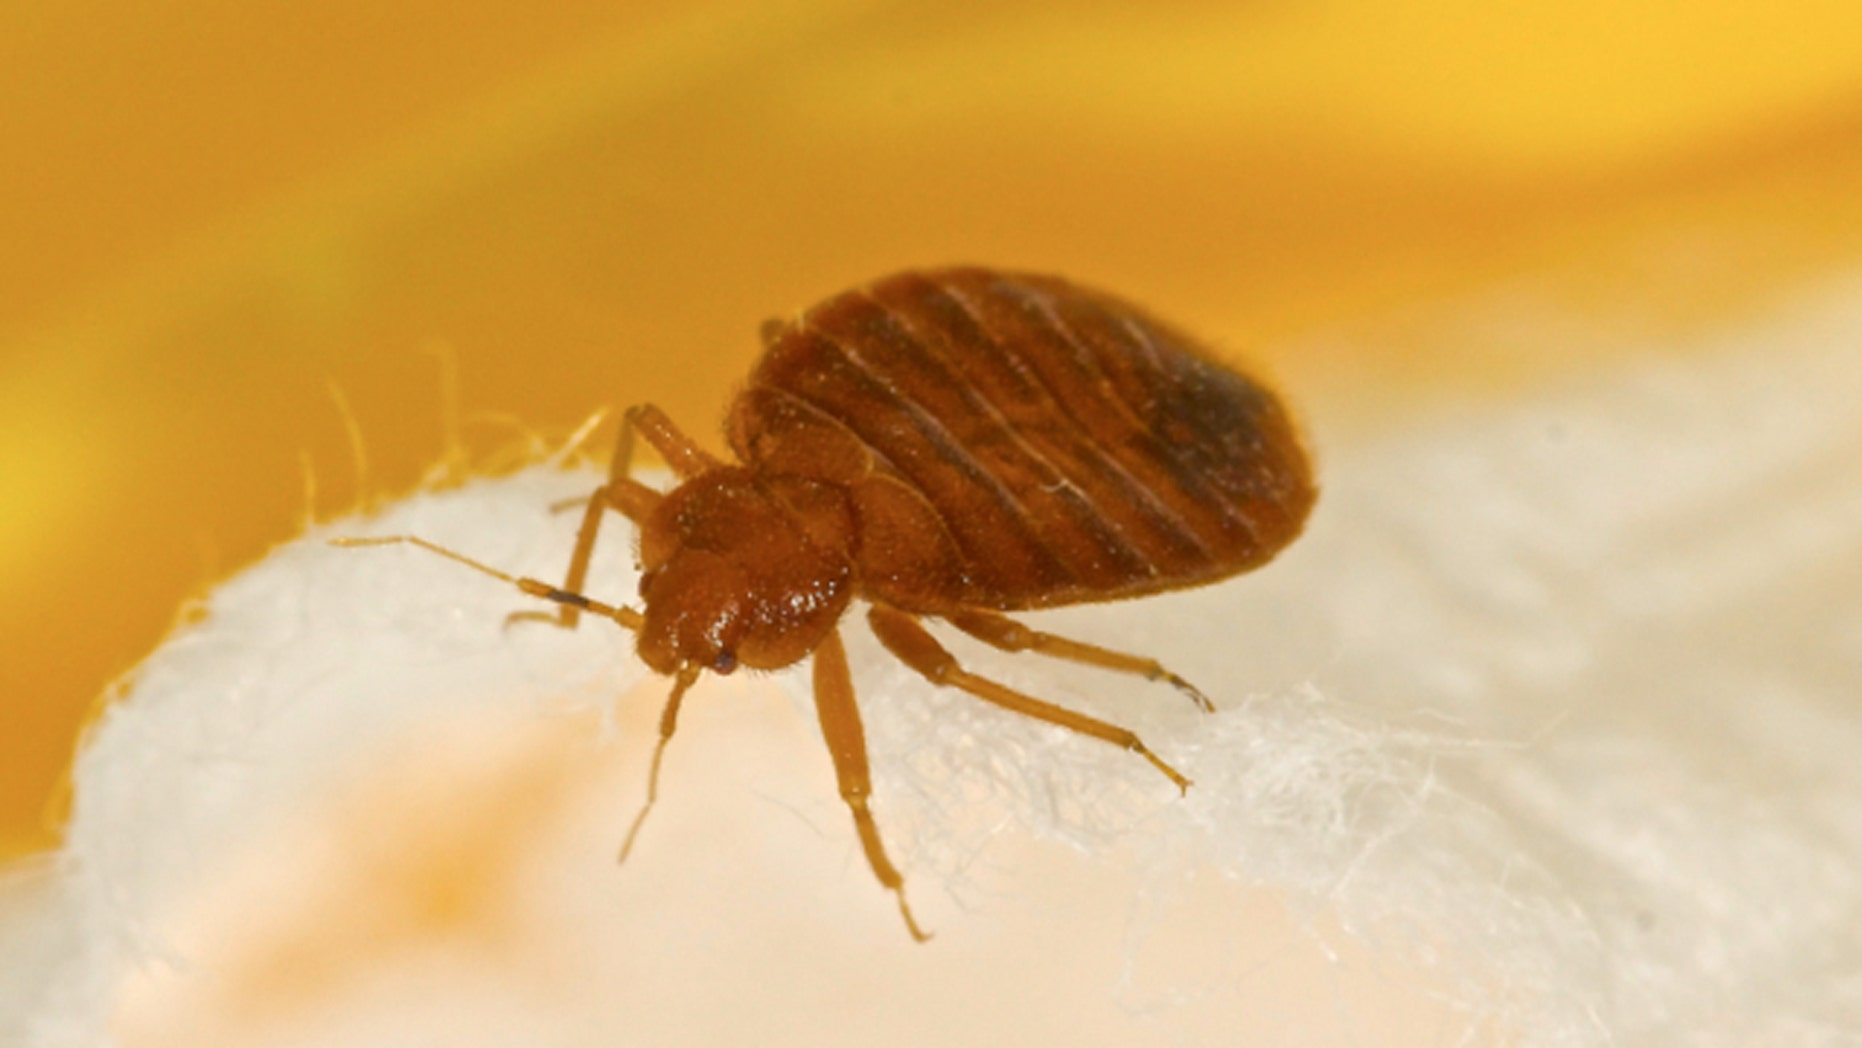 Telltale signs of a bed bug infestation are blood or poop on the mattress.